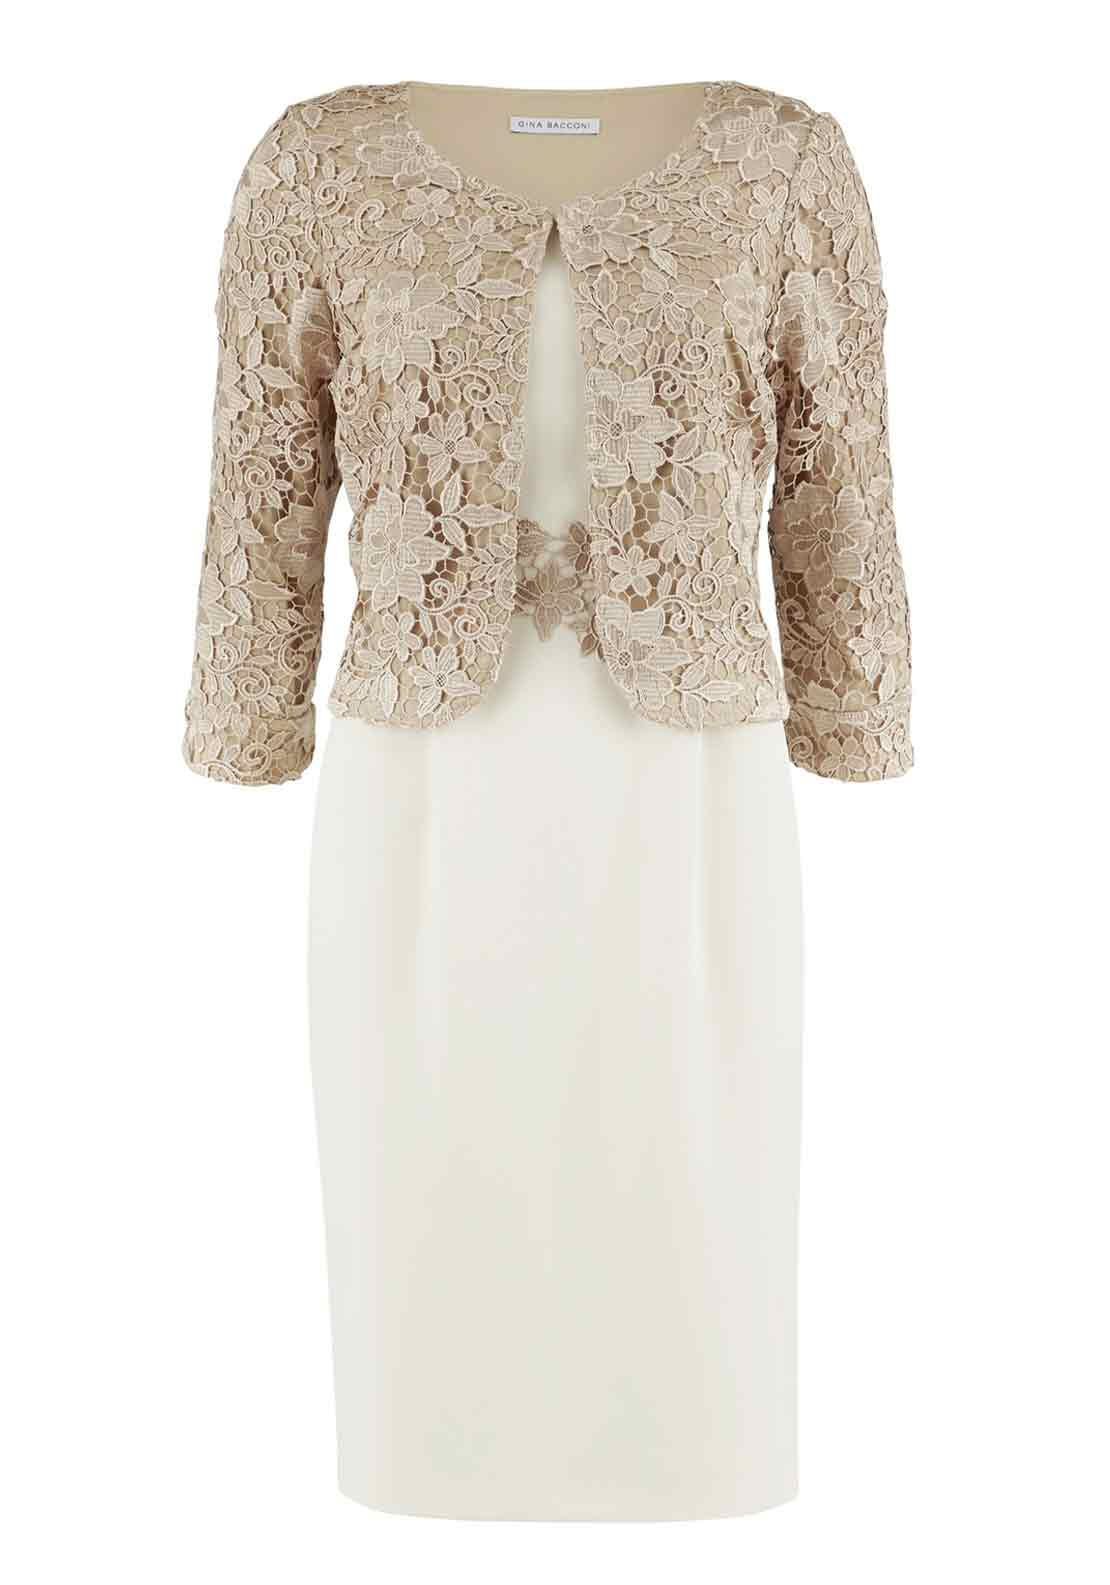 Gina Bacconi Sleeveless Crepe Dress and Guipure Lace Jacket, Ivory